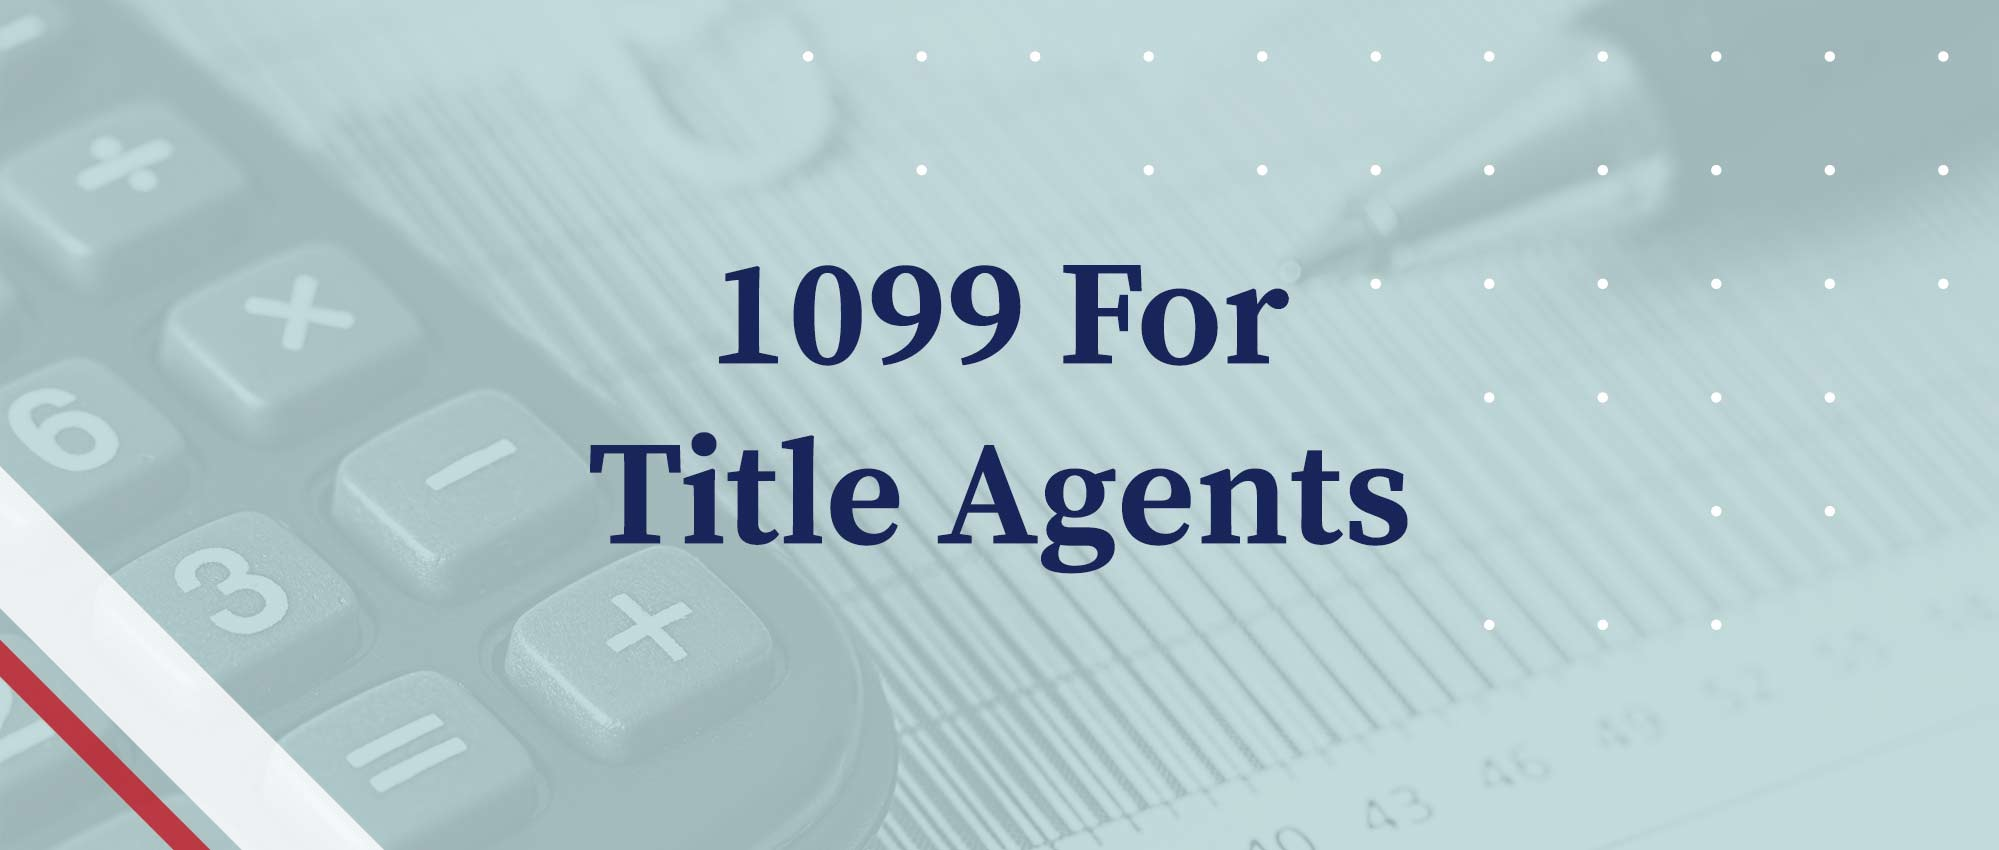 1099 for Title Agents - text faded over a calculator